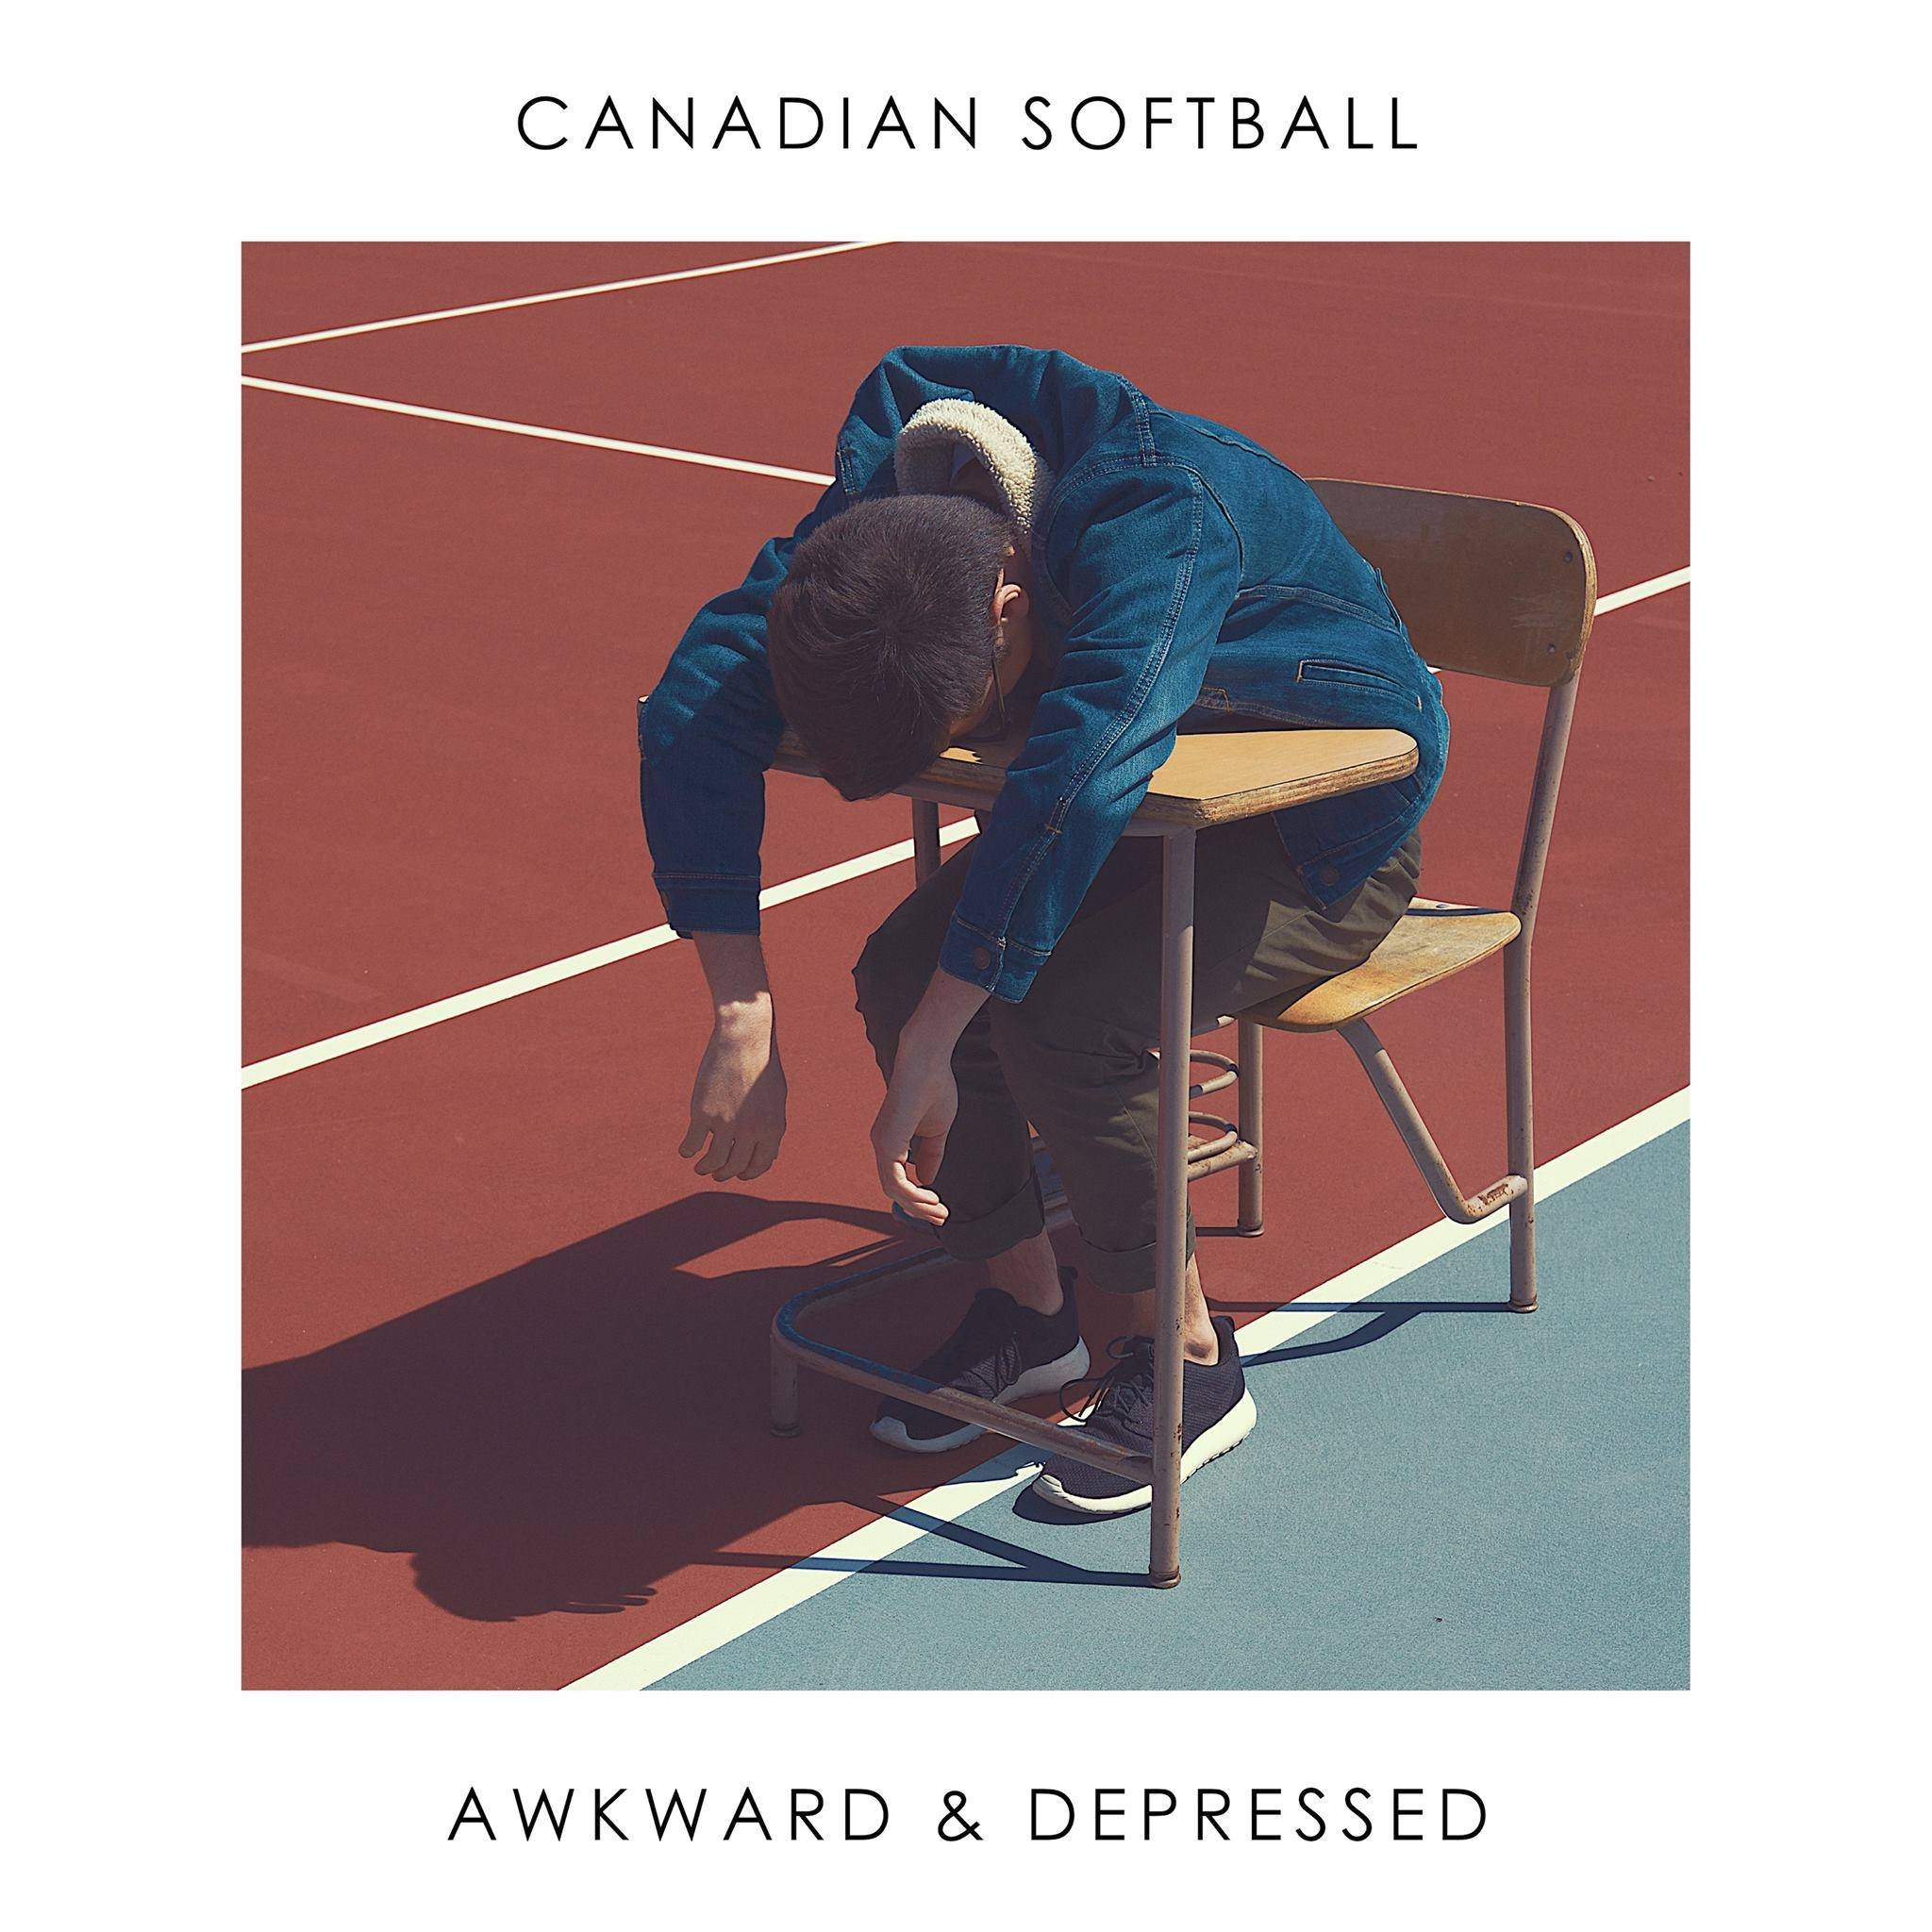 The new Canadian Softball record, Awkard & Depressed was released recently. I produced and engineered the cover of Seven by Sunny Day Real Estate.  #1 Billboard Comedy Albums #19 Billboard Heatseeker Albums #39 Billboard Independent Albums